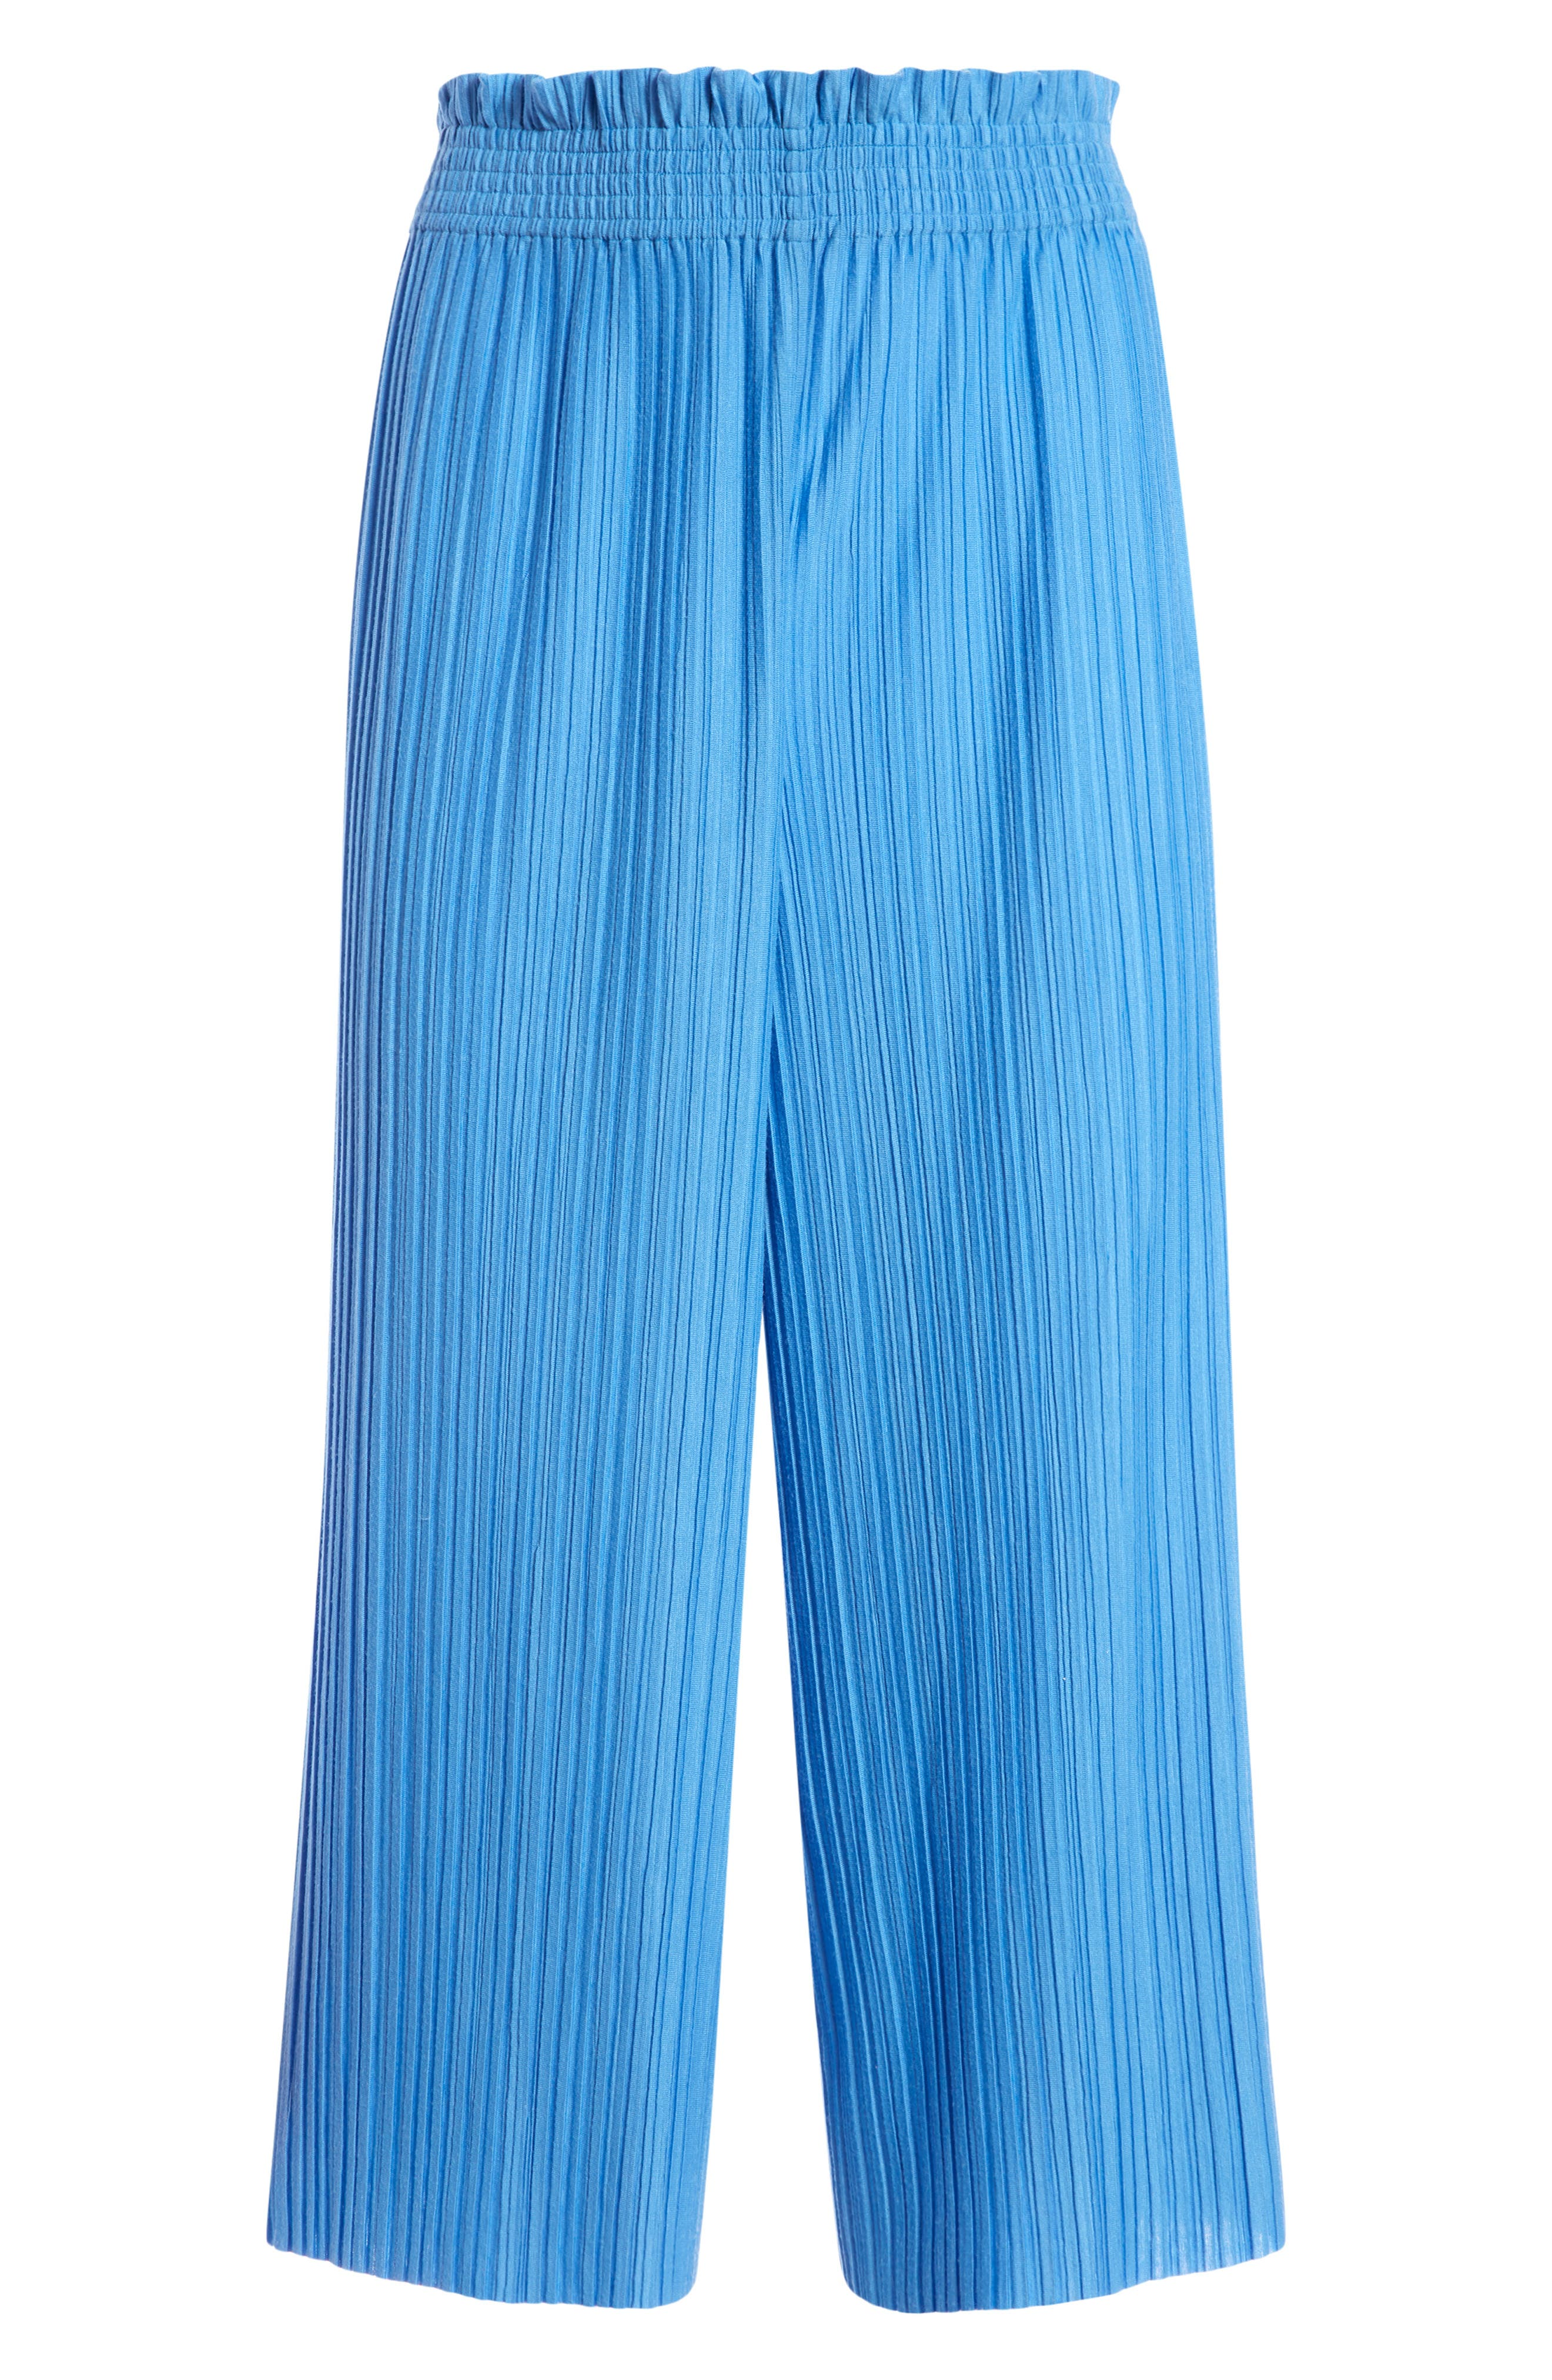 Combining all the breezy flow of a skirt with the relaxed feel of wide-leg pants, these silky, plisse-pleated culottes are further eased with an elastic waist. Style Name: Alice + Olivia Tucker Plisse Pleat Culottes. Style Number: 6059034. Available in stores.